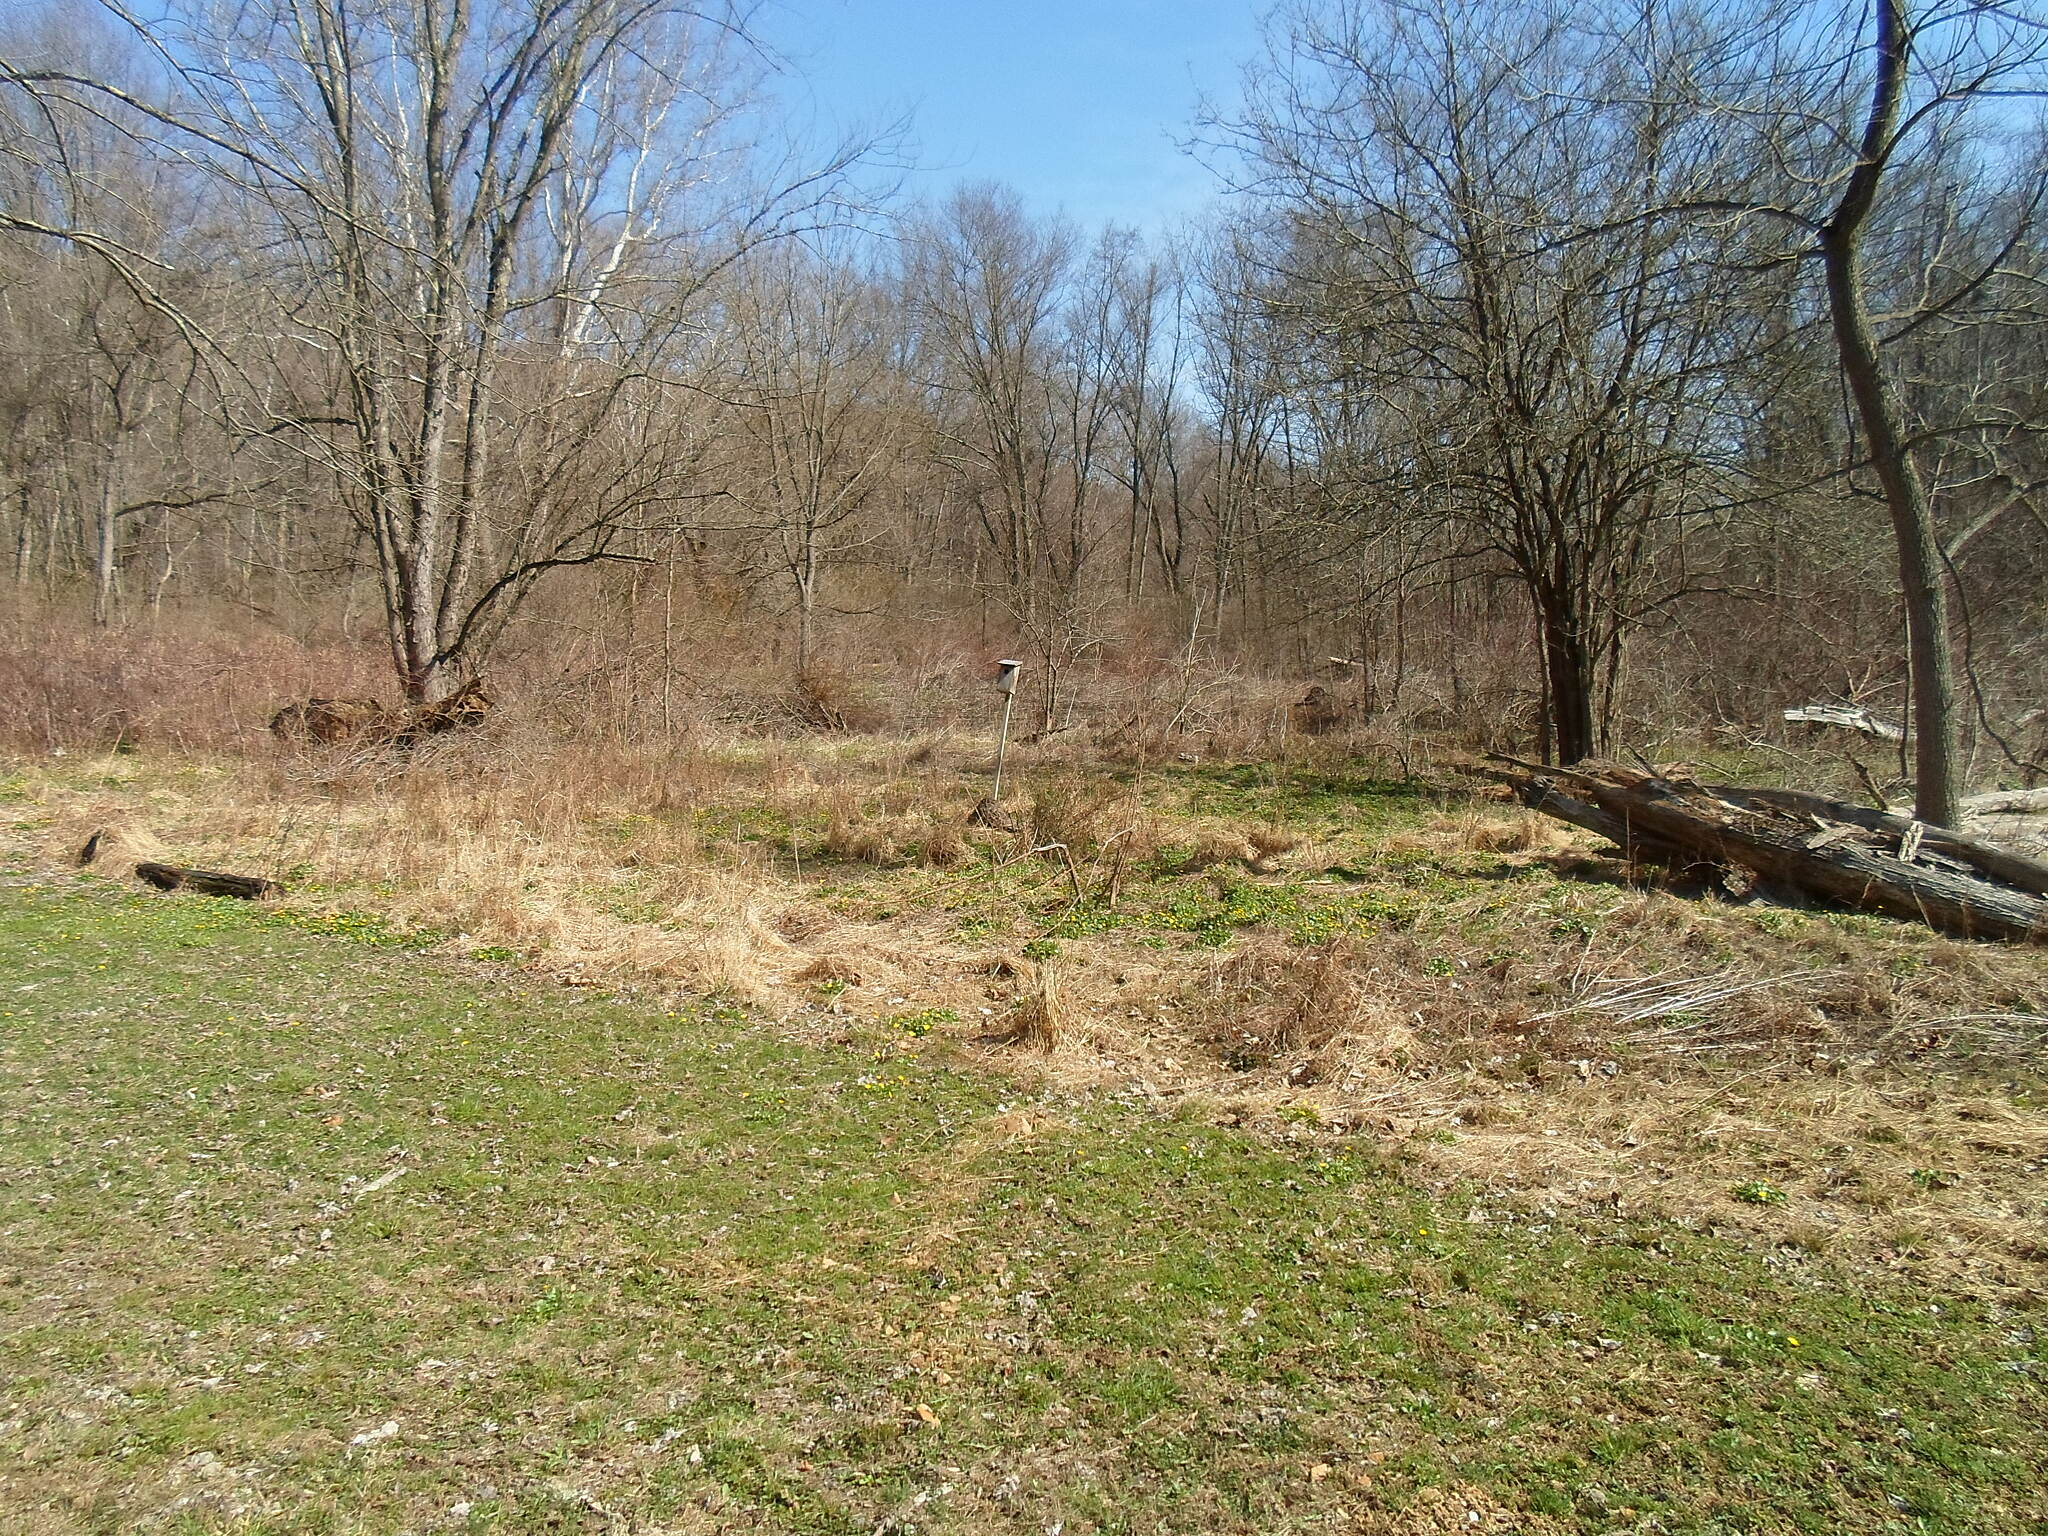 East Branch Brandywine Trail East Branch Brandywine Trail Wetlands with birdhouse. Notice the skunk cabbage and other small, green plants emerging. Taken April 2015.